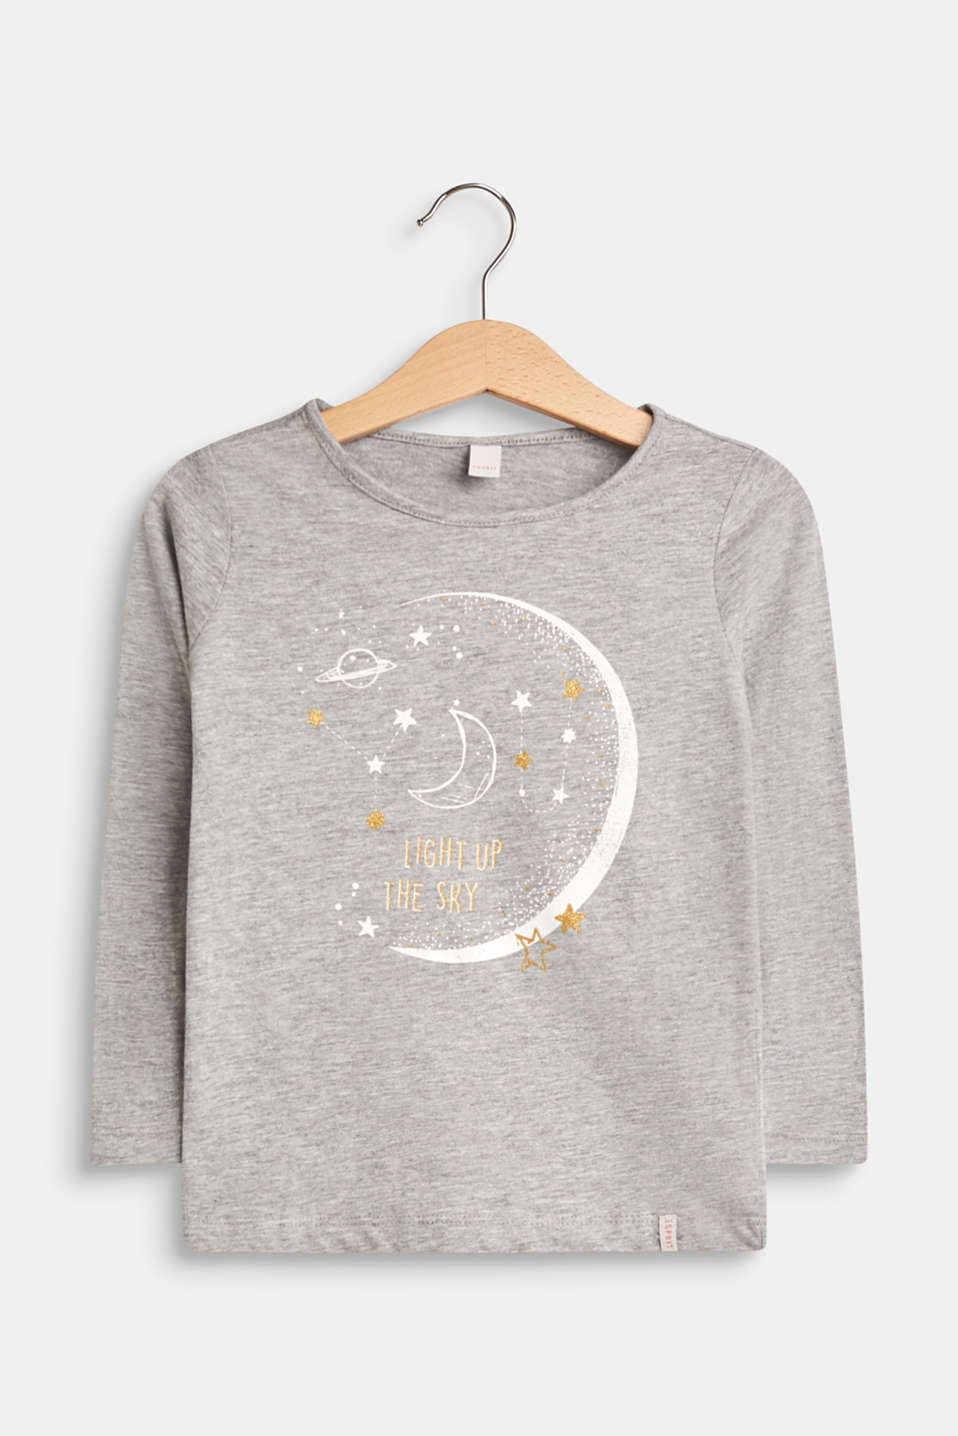 Esprit - 11 - t-shirt ls moon